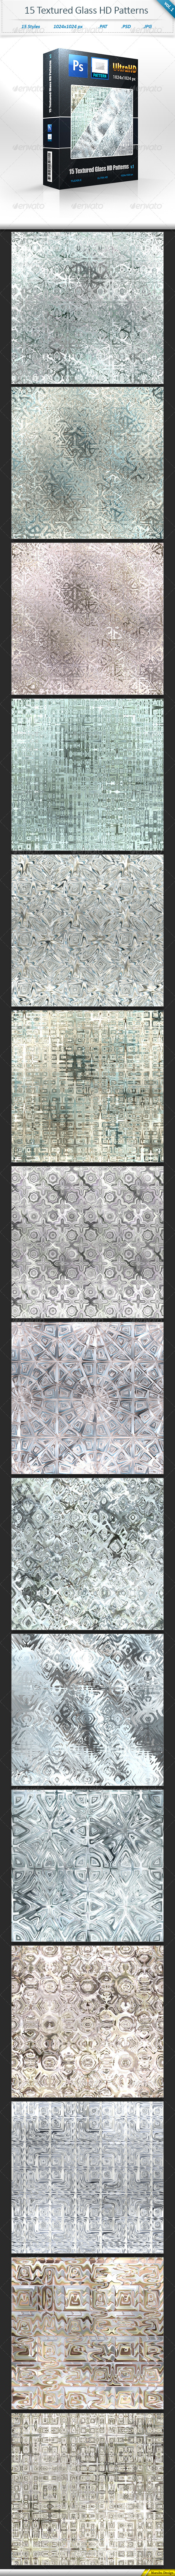 GraphicRiver Textured Glass Tileable HD Patterns vol 1 8317891